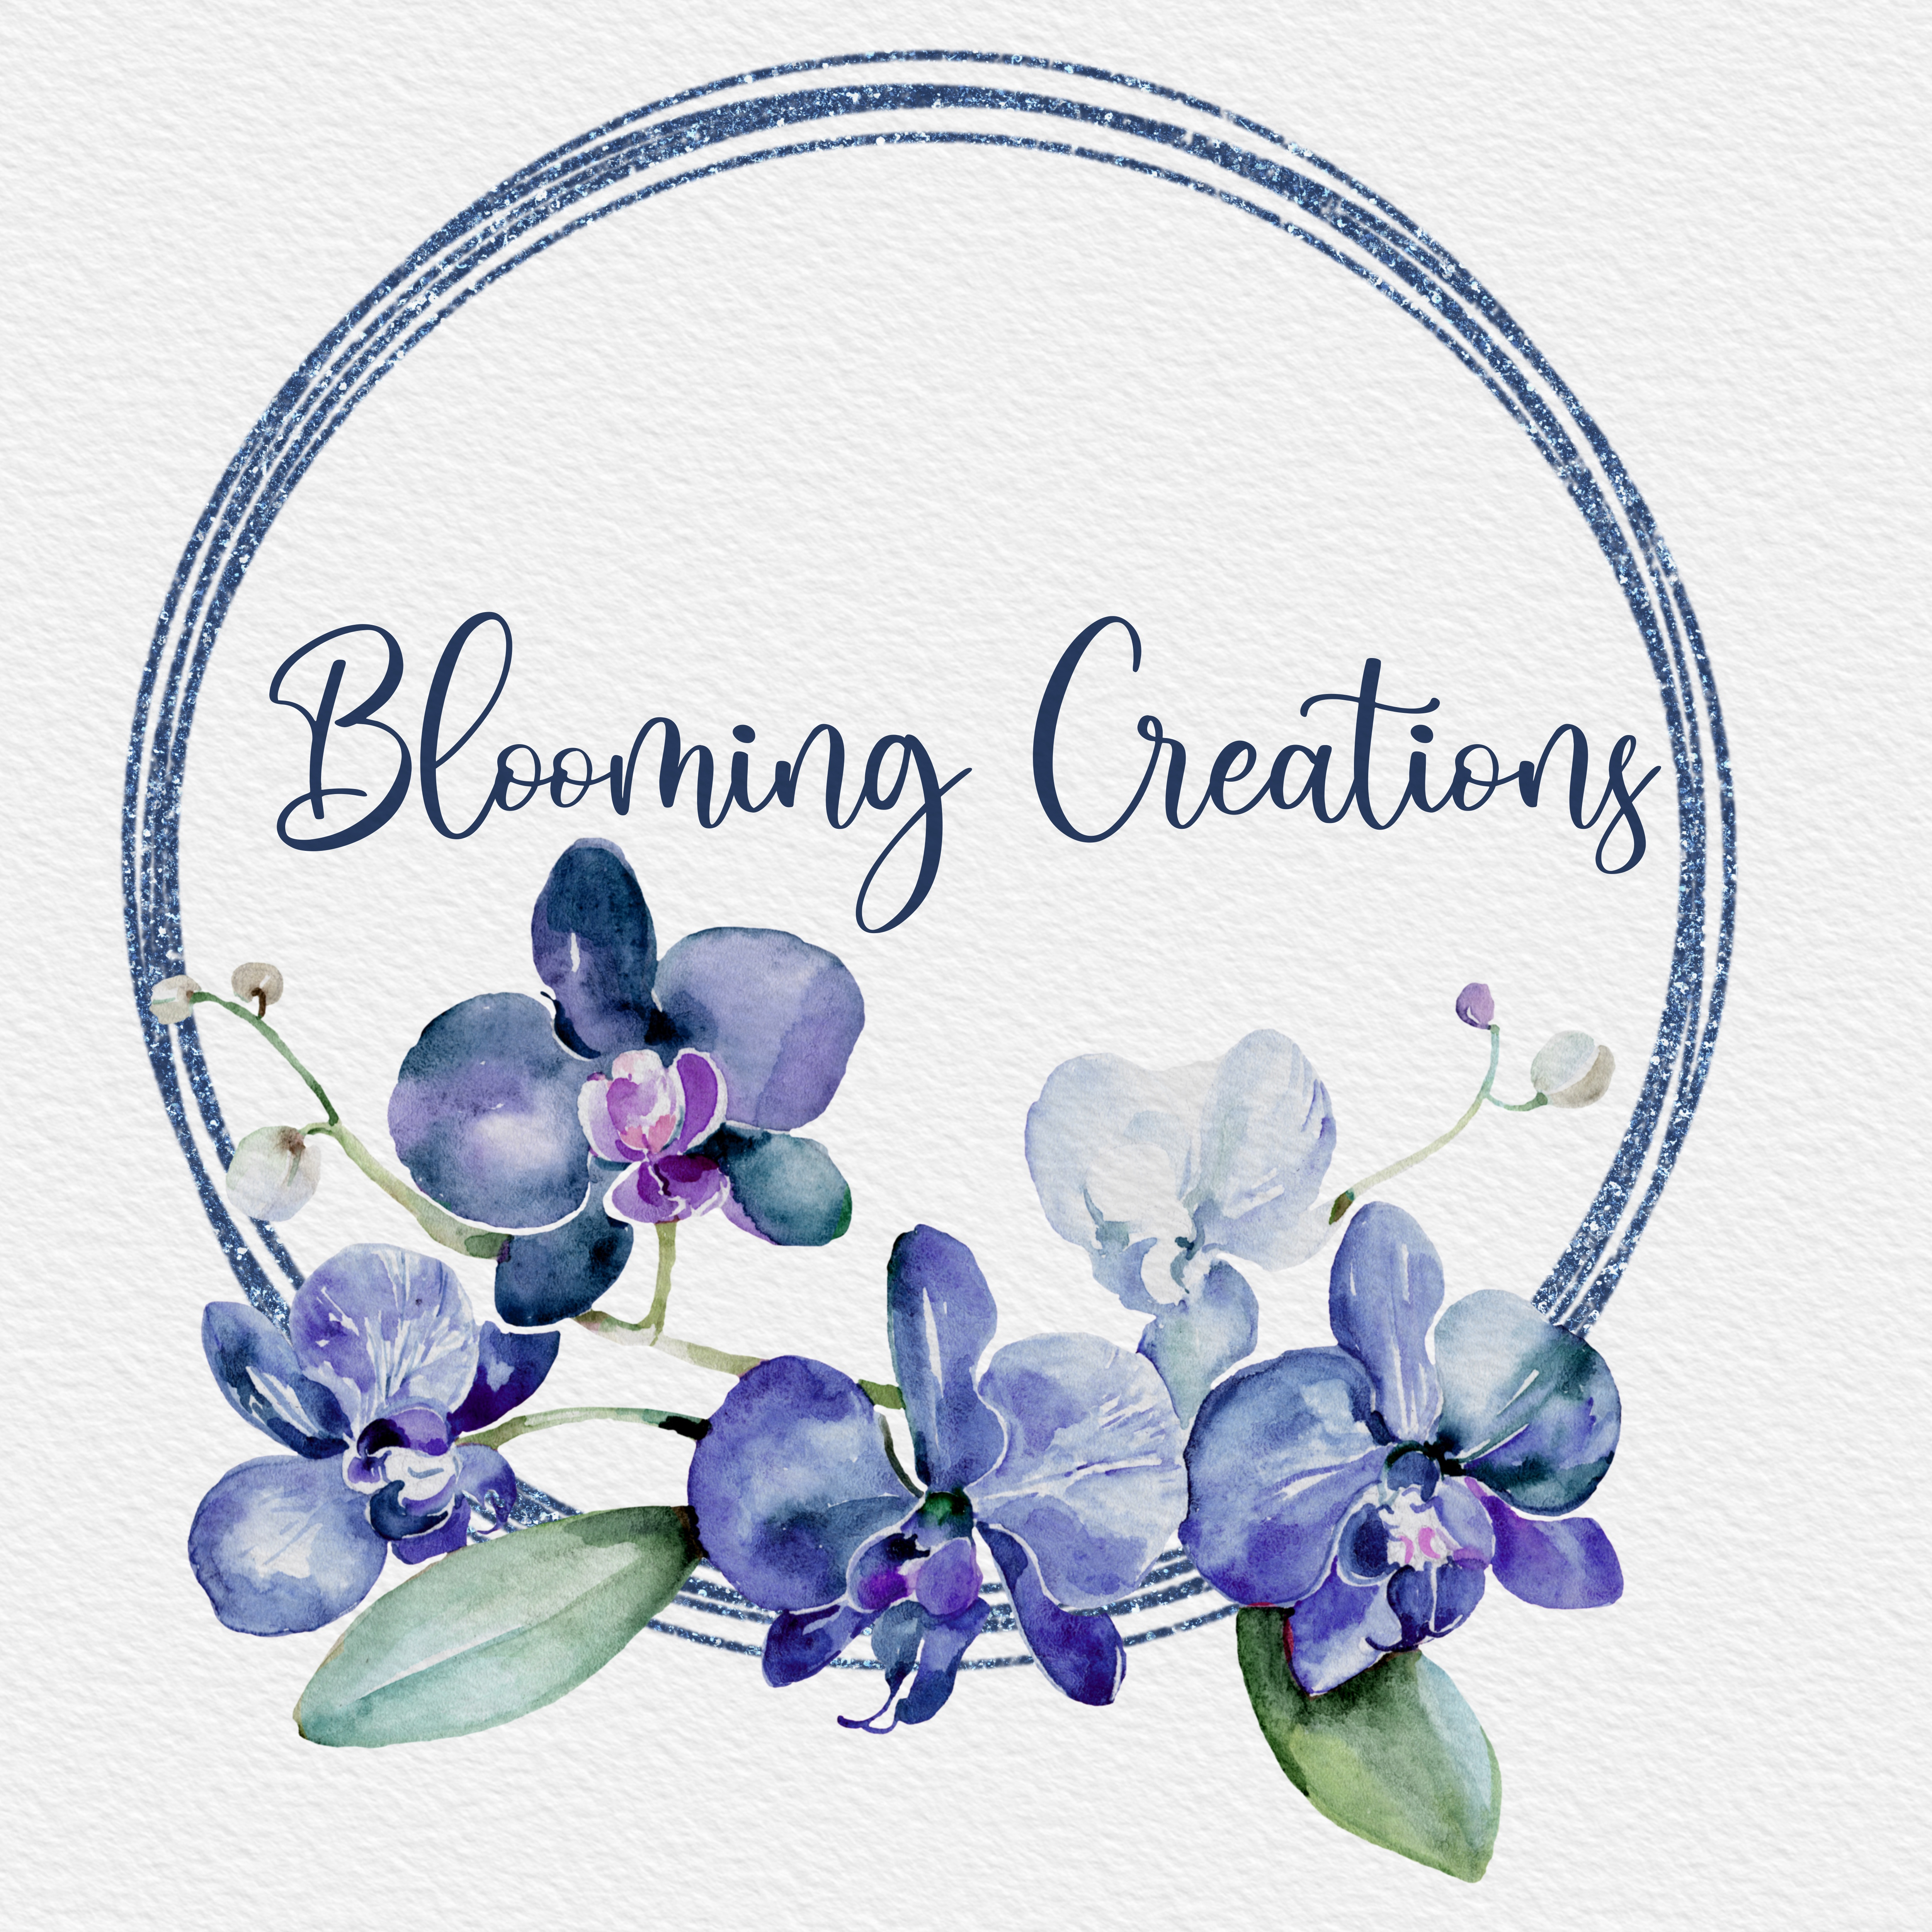 bloomingcreations82's profile picture